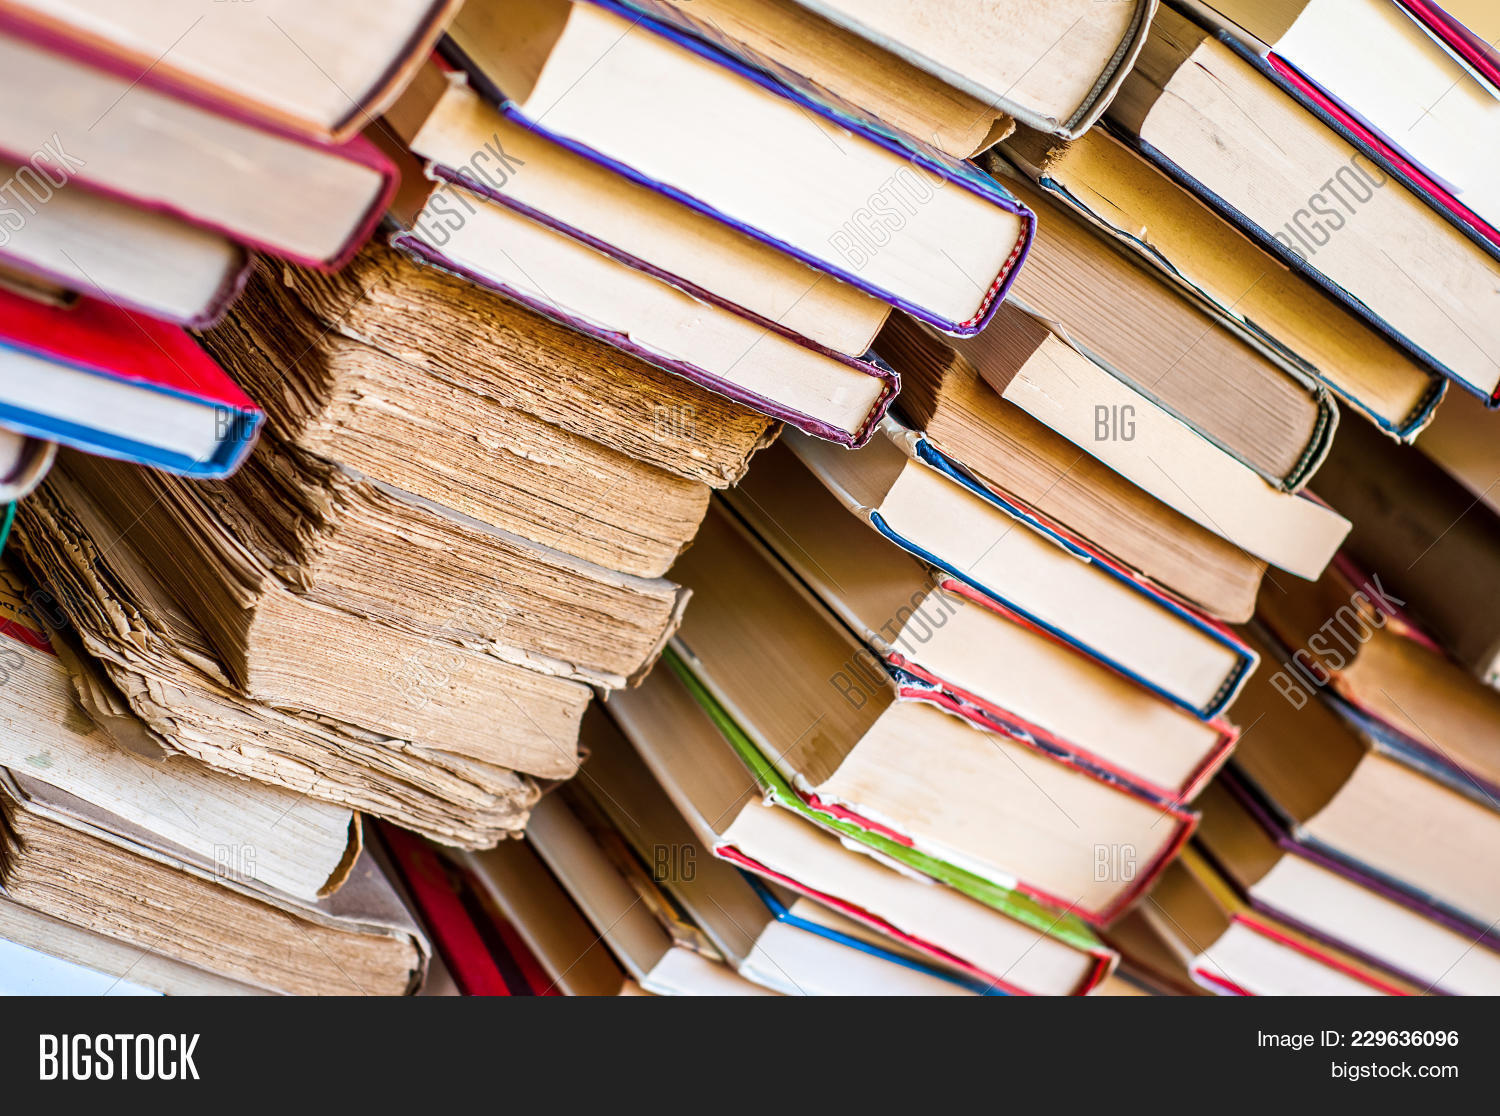 Old New Books Stacks. Colorful Book Image & Photo | Bigstock